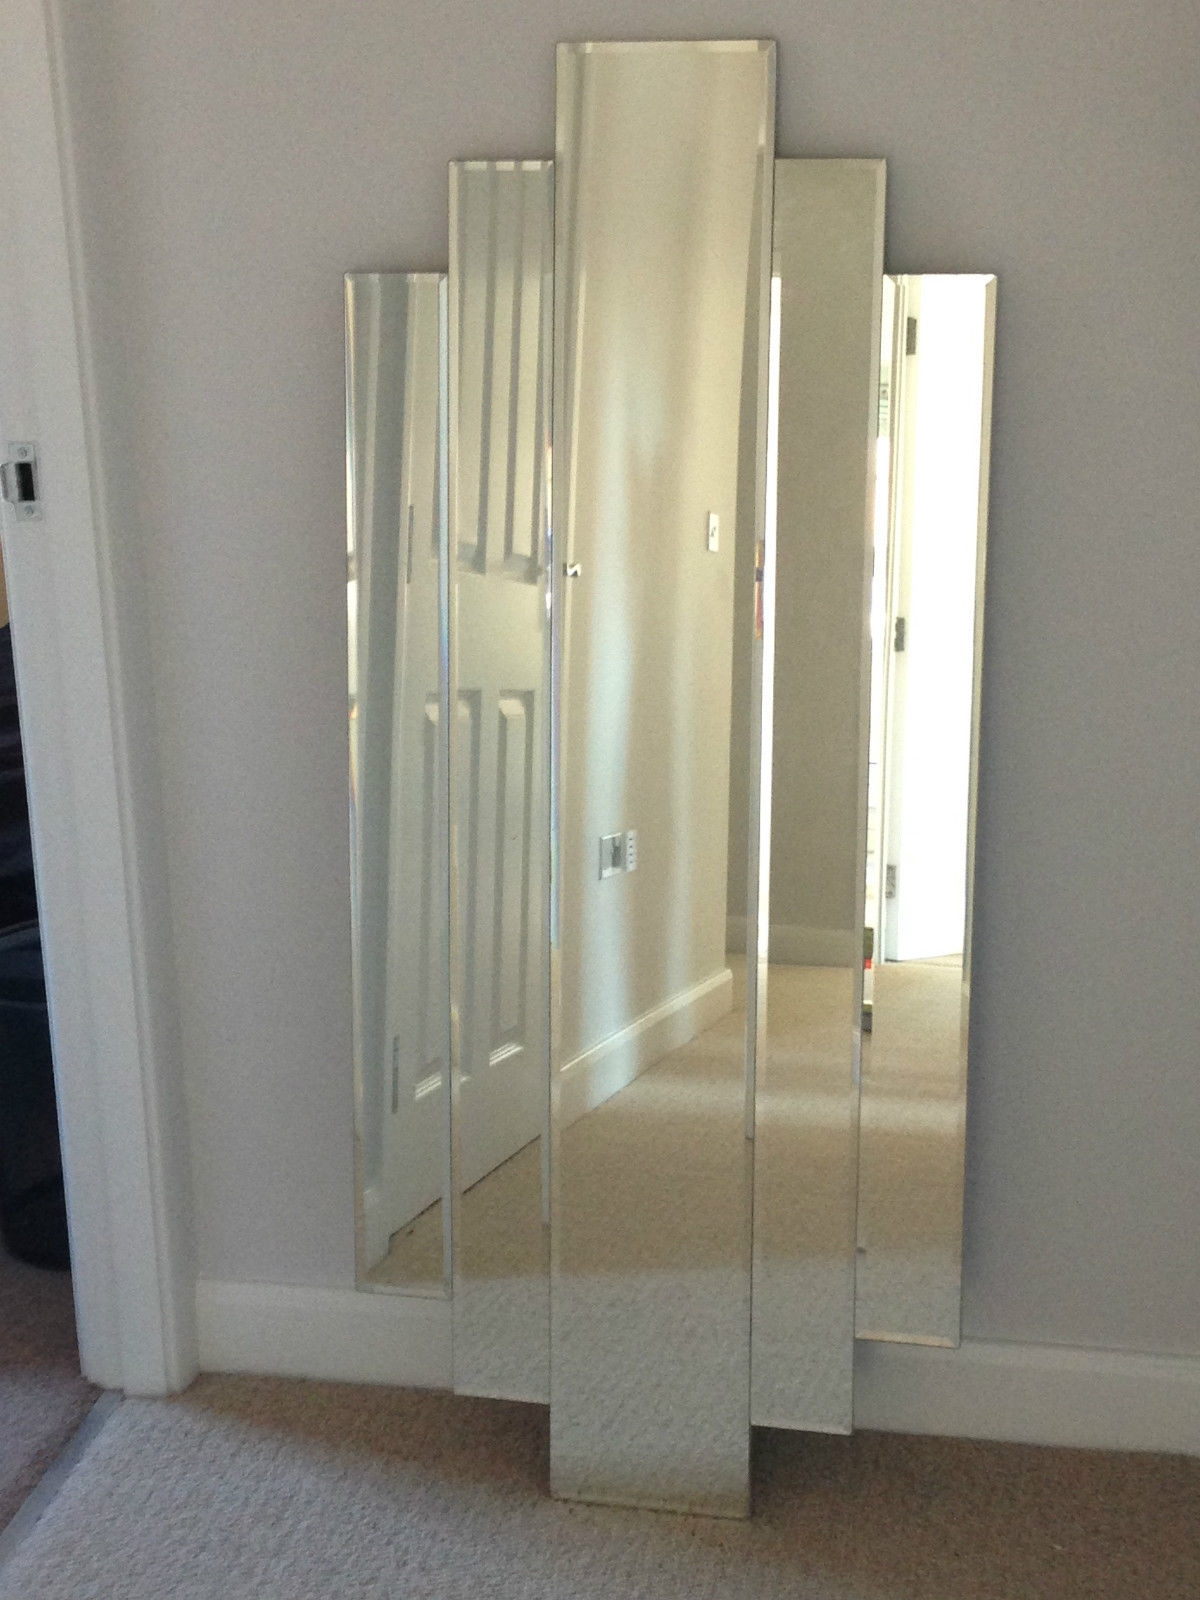 Stunning Art Deco Full Length Mirror Beveled Tiered Retro With Art Deco Full Length Mirror (View 9 of 15)